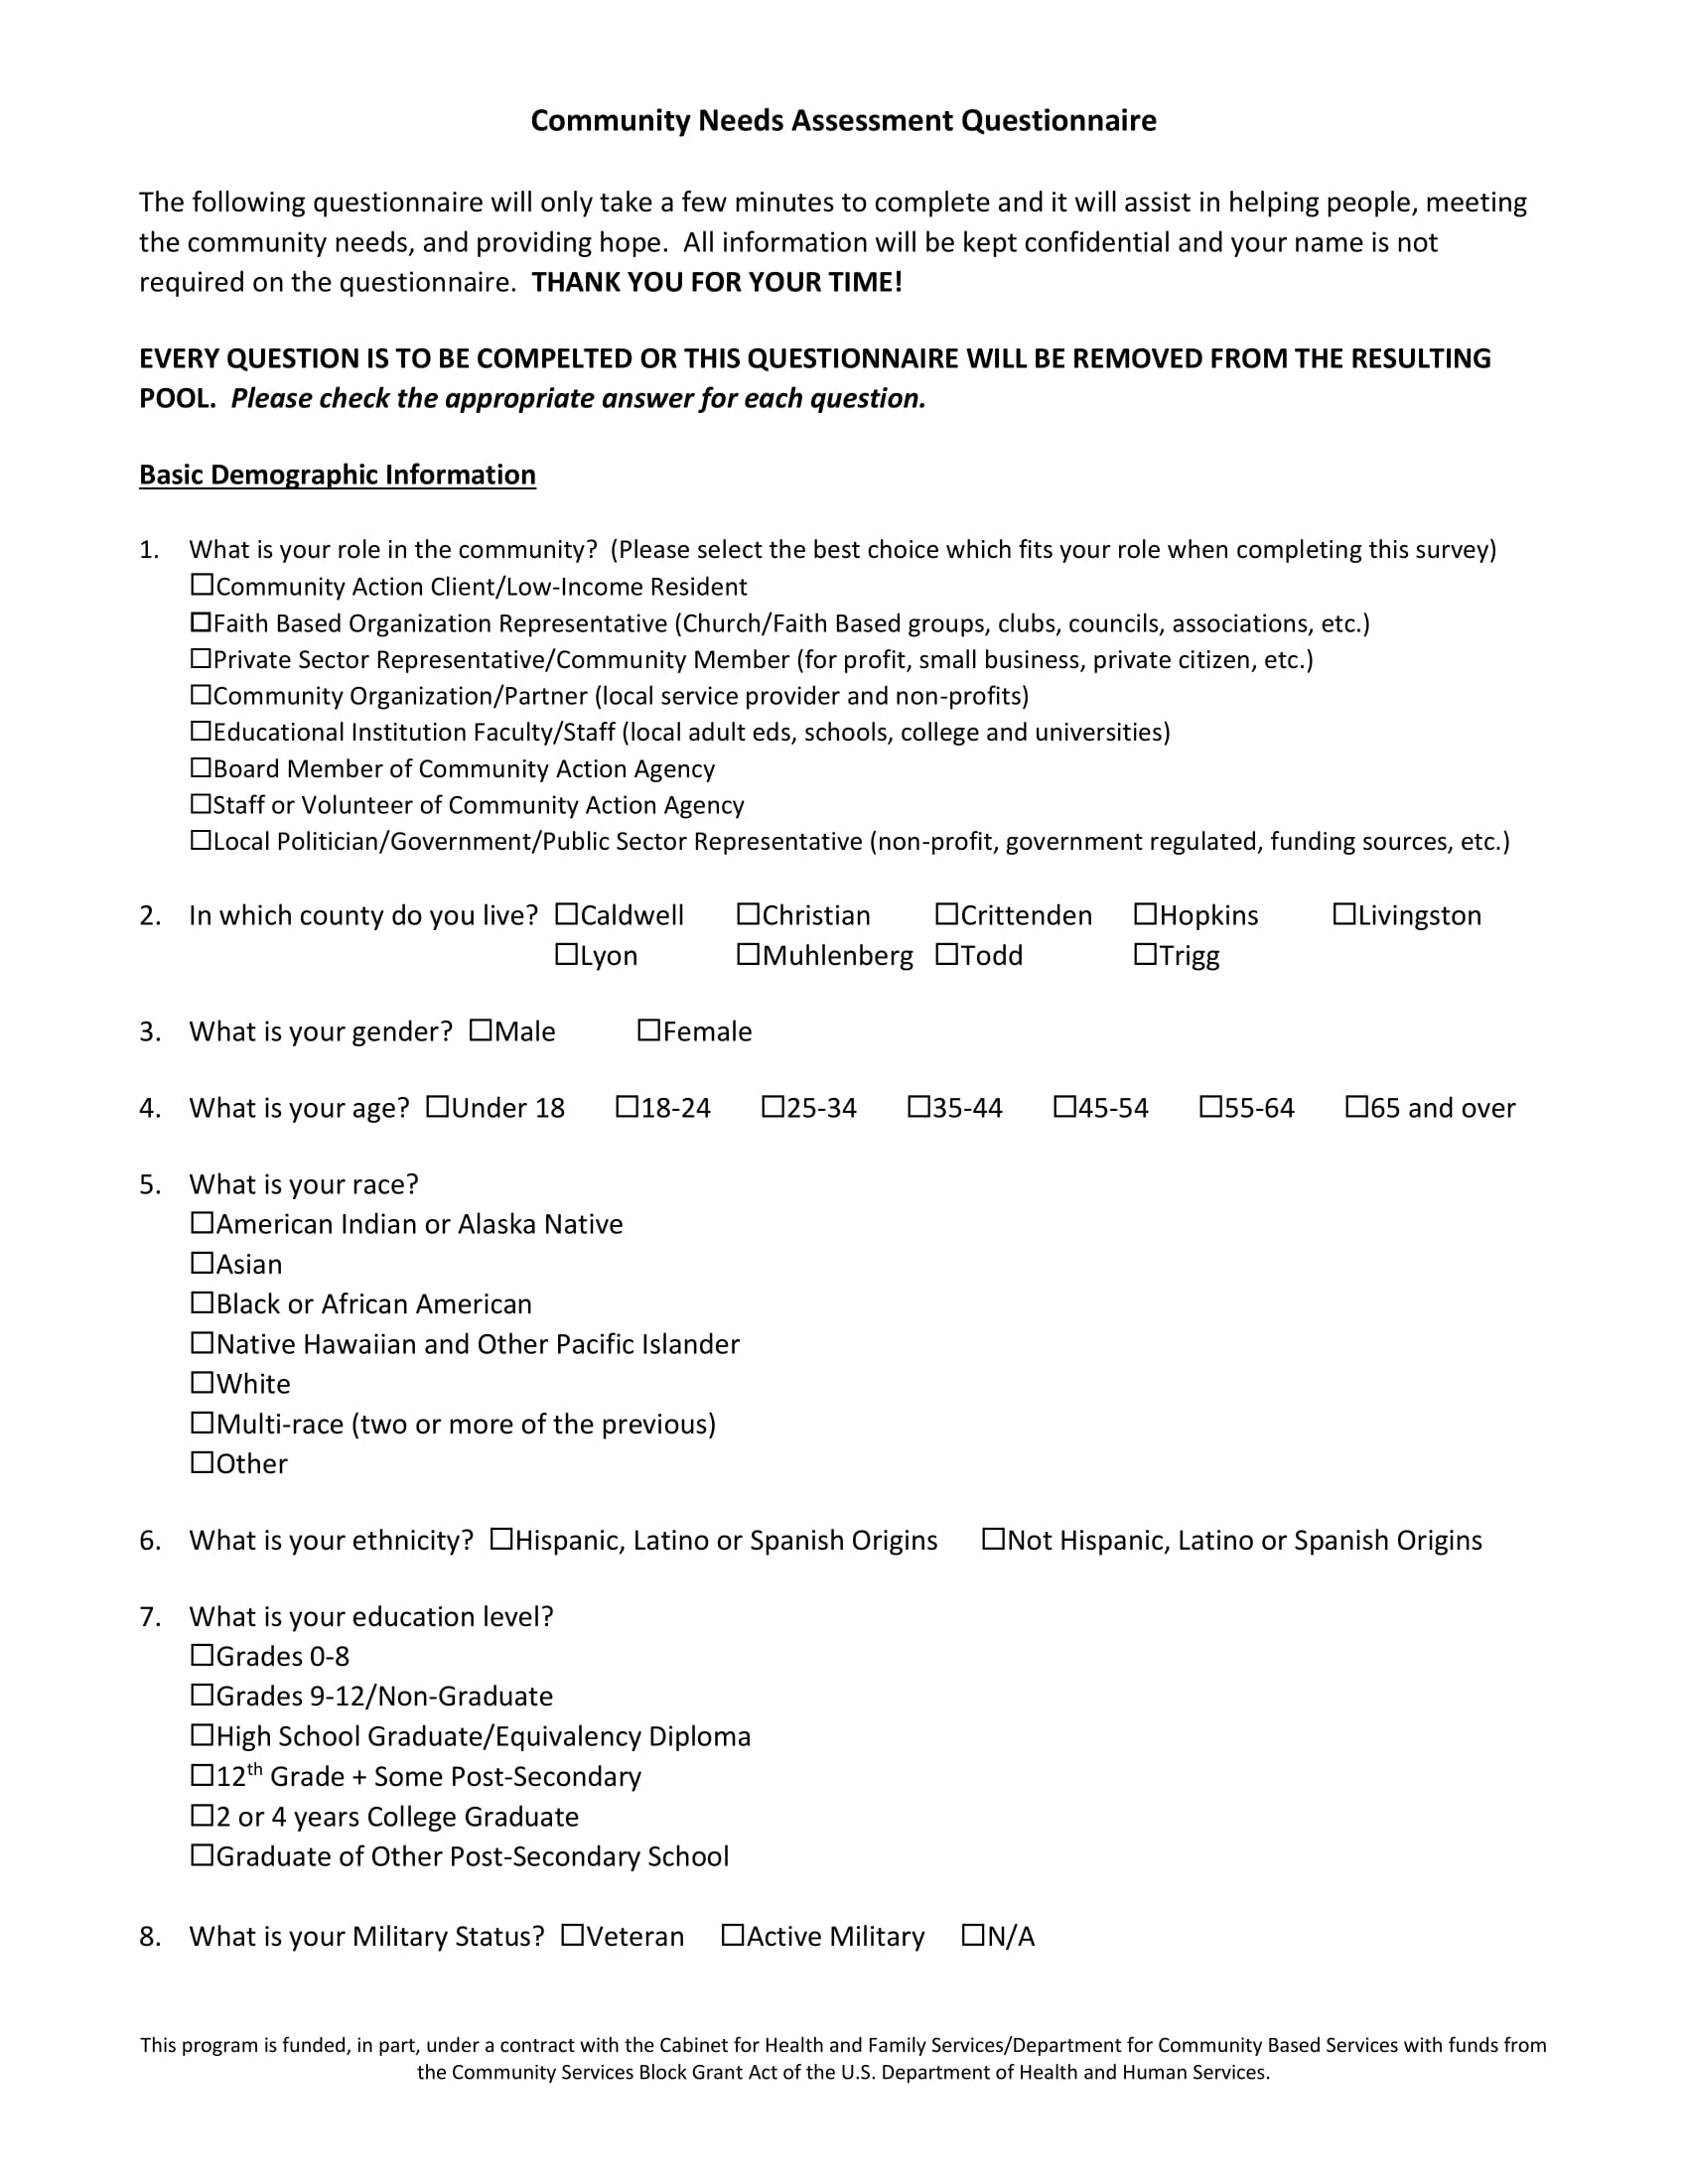 community needs assesment questionnaire example